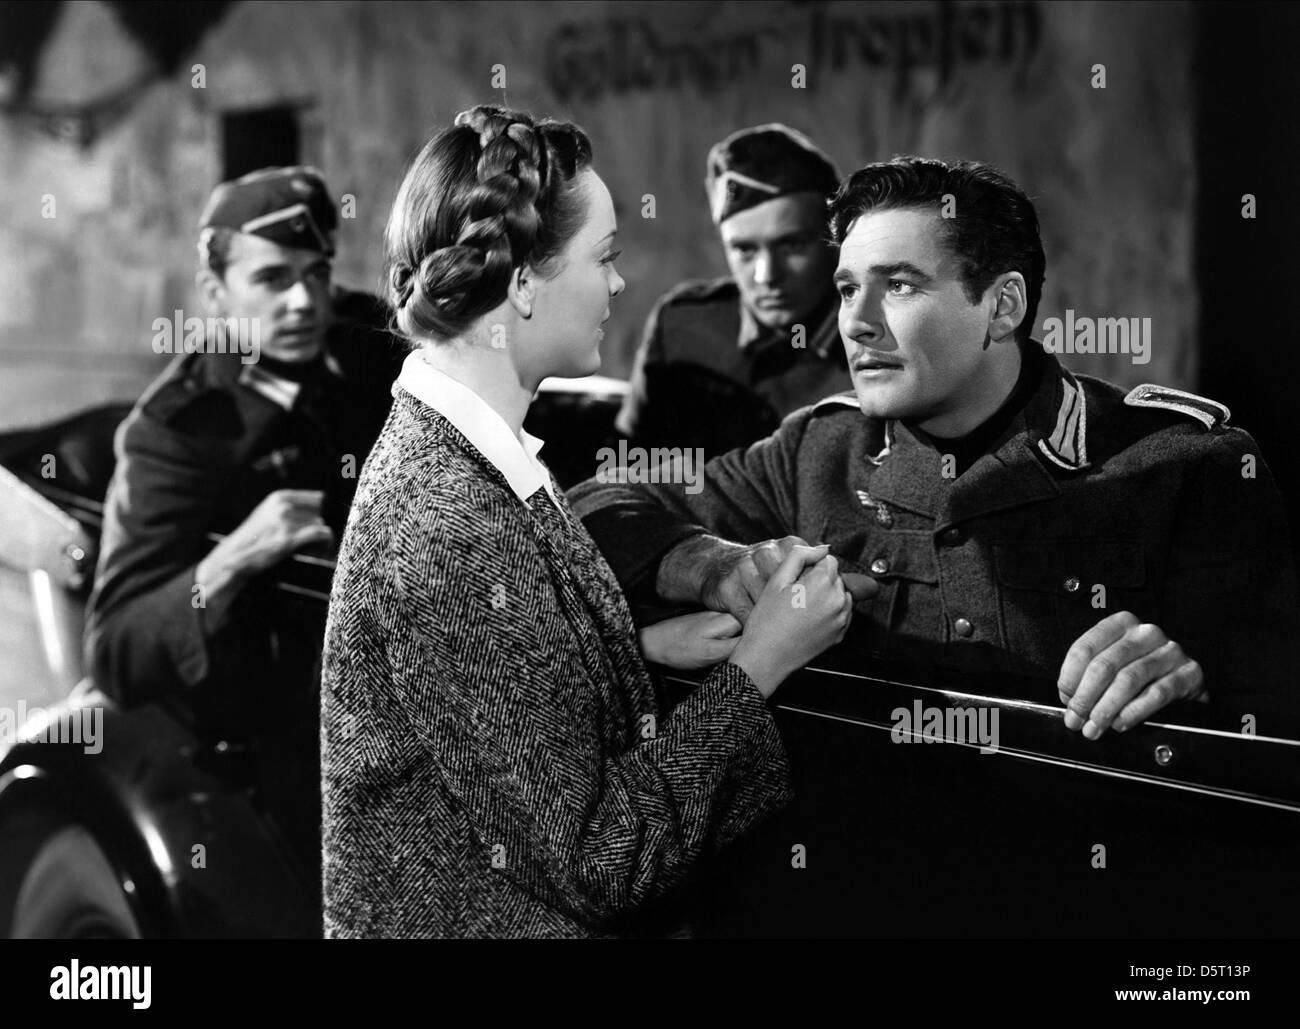 Ronald Reagan Nancy Coleman Errol Flynn Desperate Journey 1942 Stock Photo Alamy Gentleman jim was a biopic of boxing. https www alamy com stock photo ronald reagan nancy coleman errol flynn desperate journey 1942 55232122 html